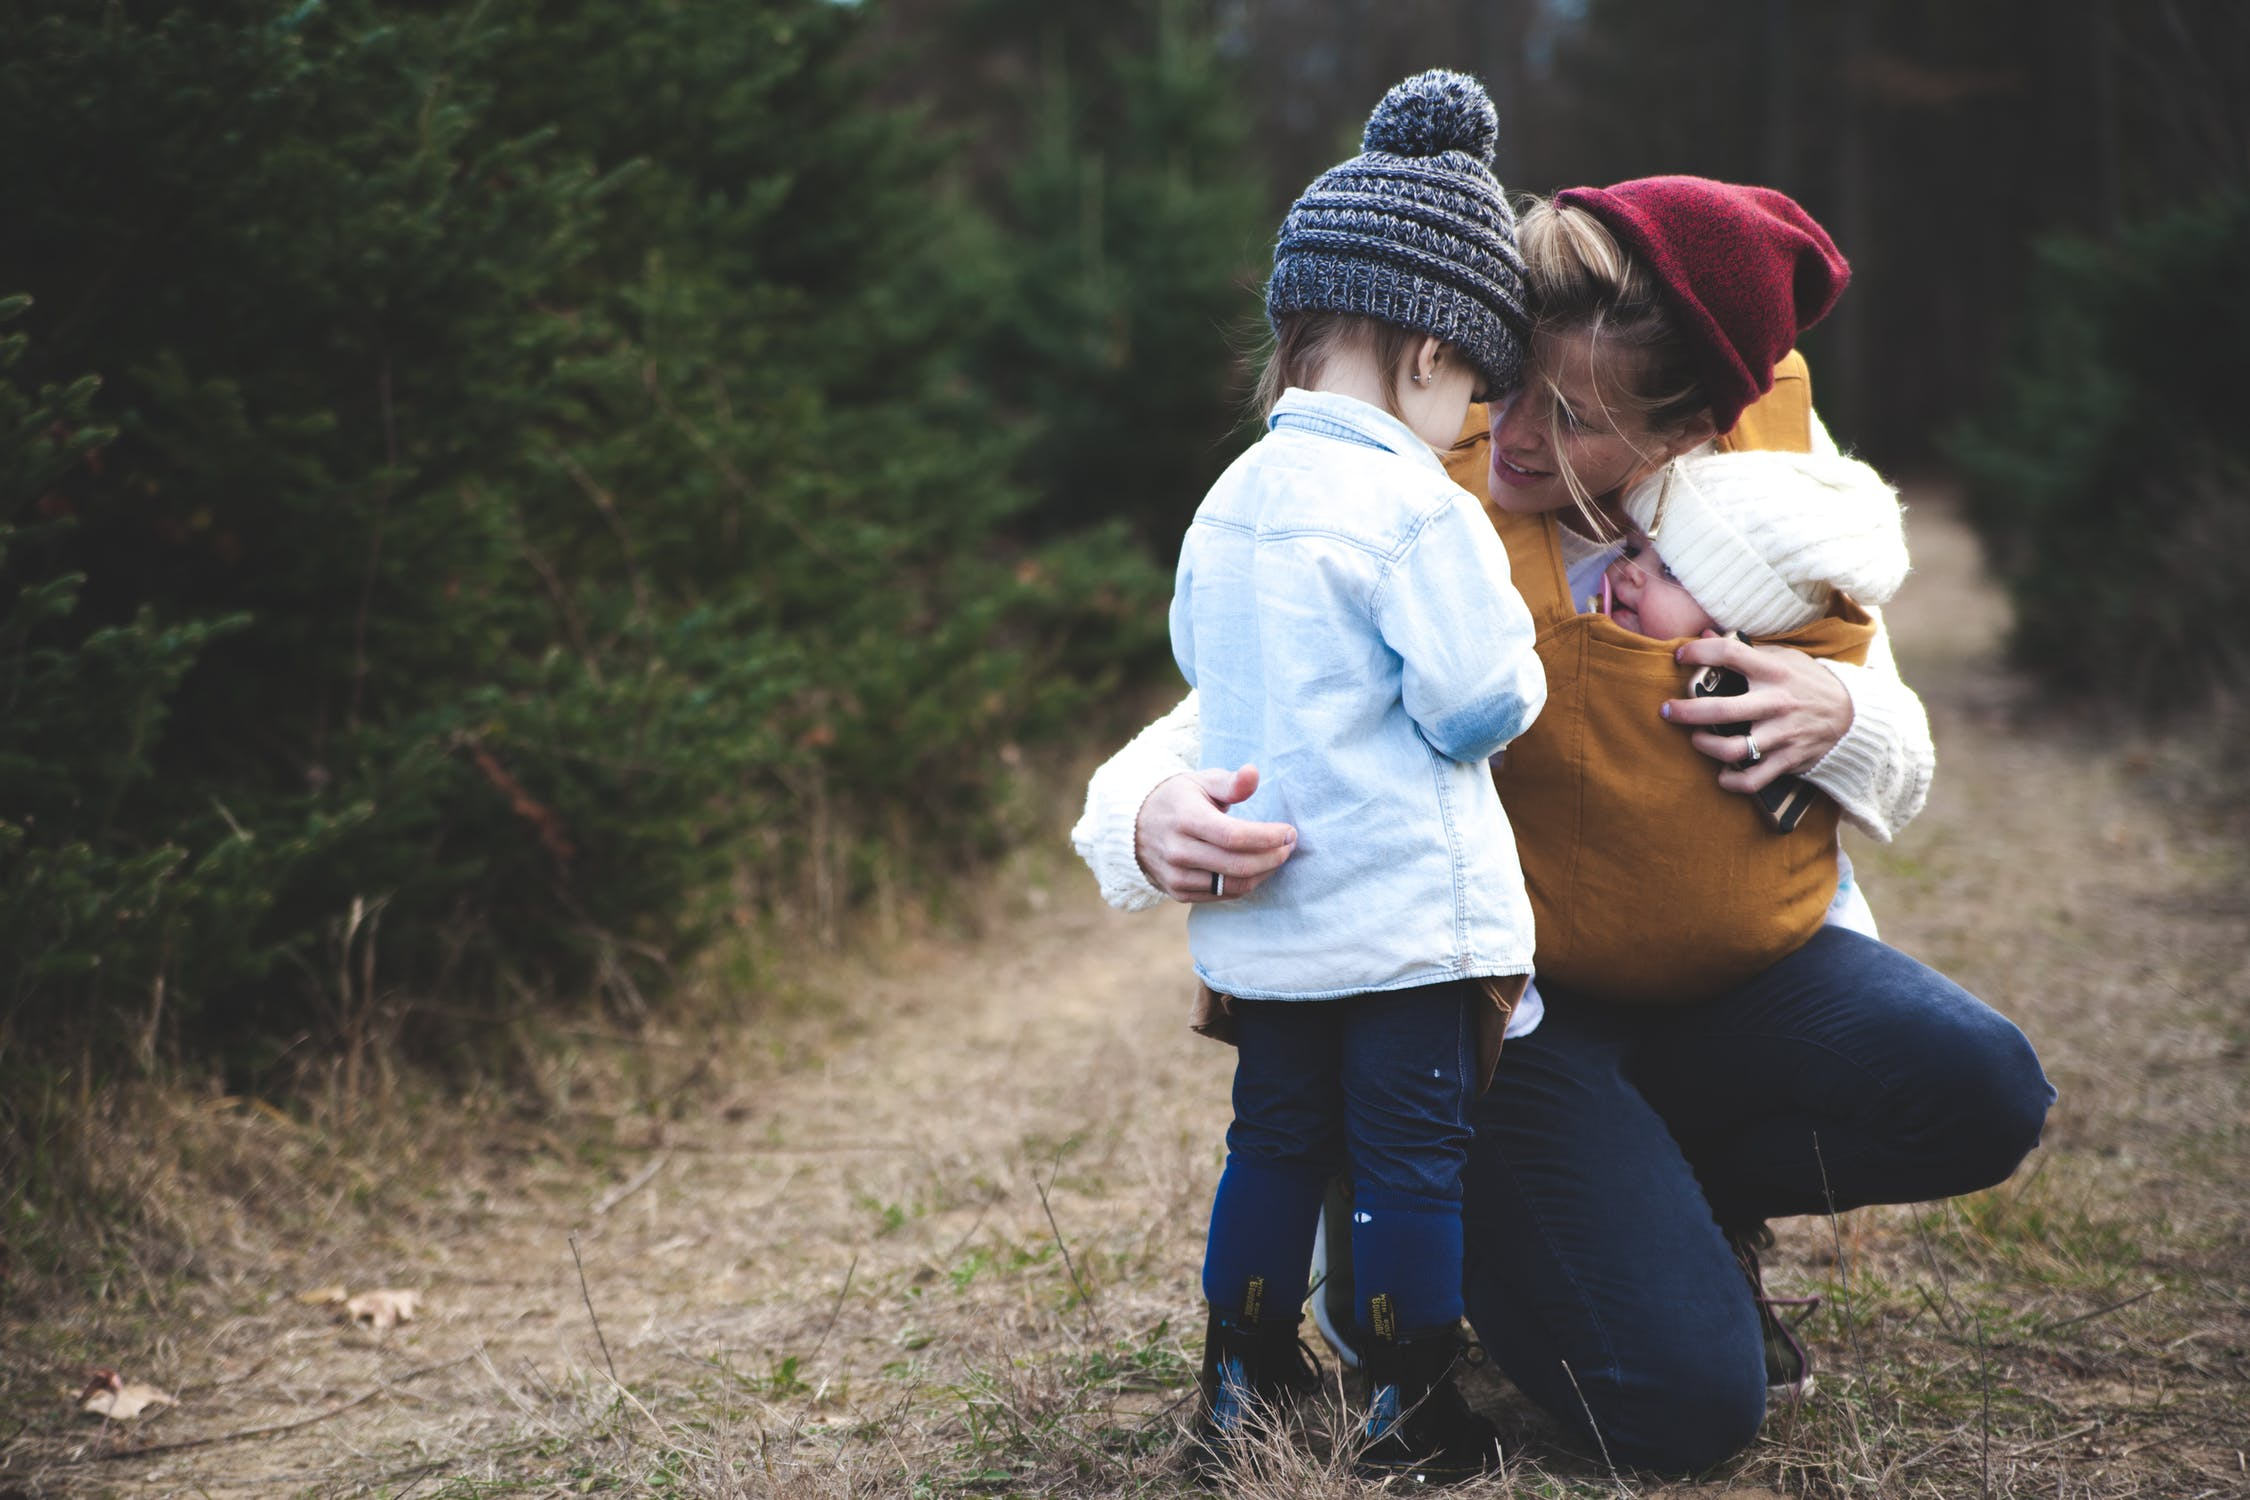 2020 Parenting Resolutions That Are Easy to Make